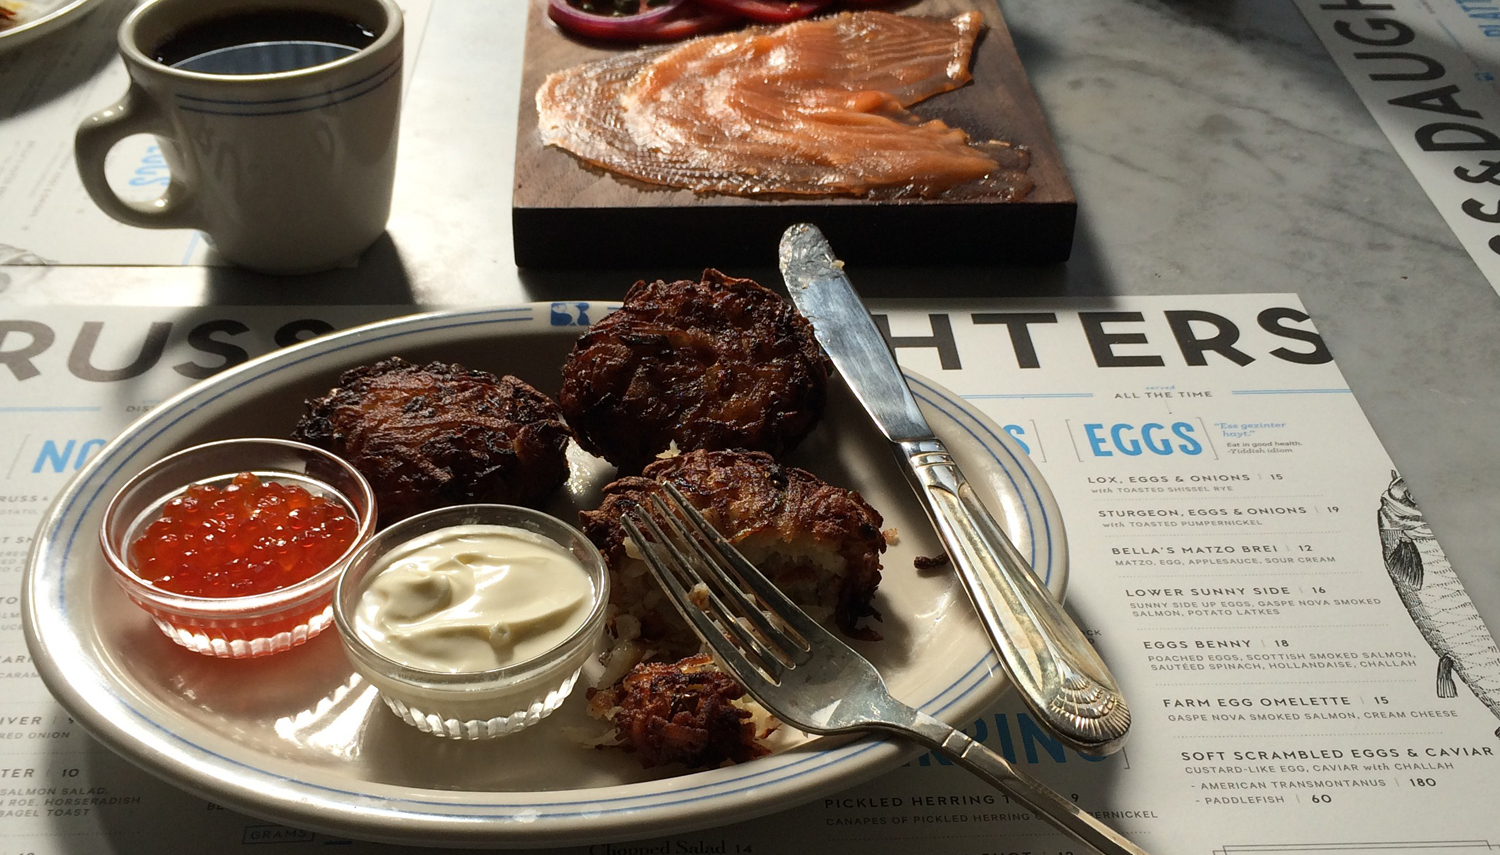 russ and daughters latkes on table.jpg